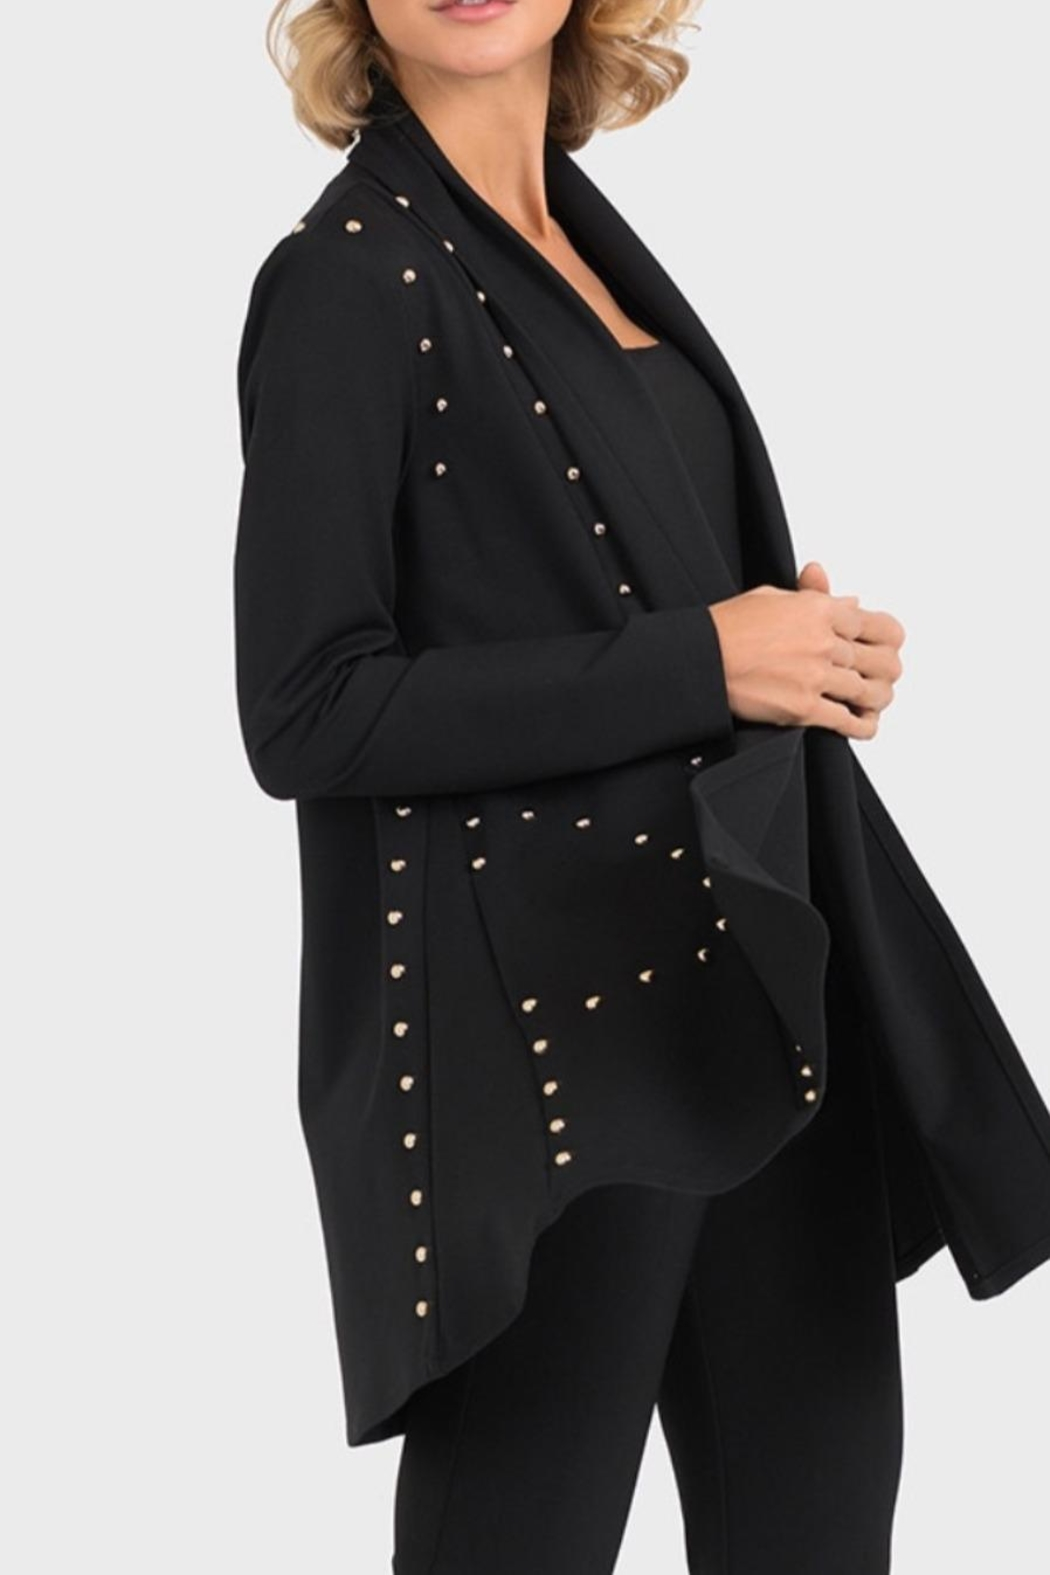 Joseph Ribkoff Studded Black Jacket - Main Image